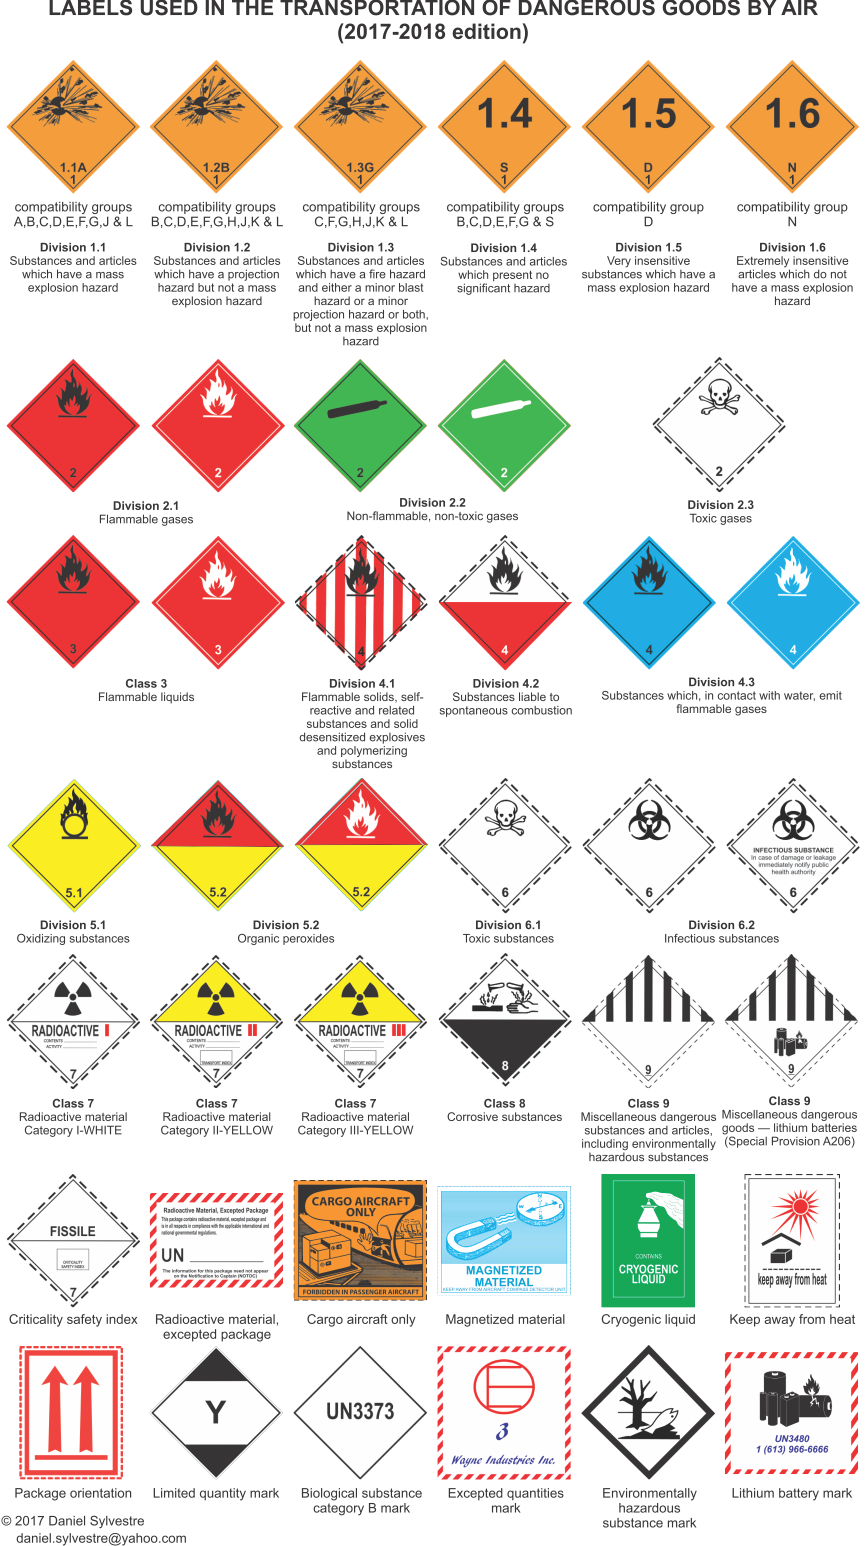 Labels used in the transportation of dangerous goods by air 2017 labels used in the transportation of dangerous goods by air 2017 2018 edition biocorpaavc